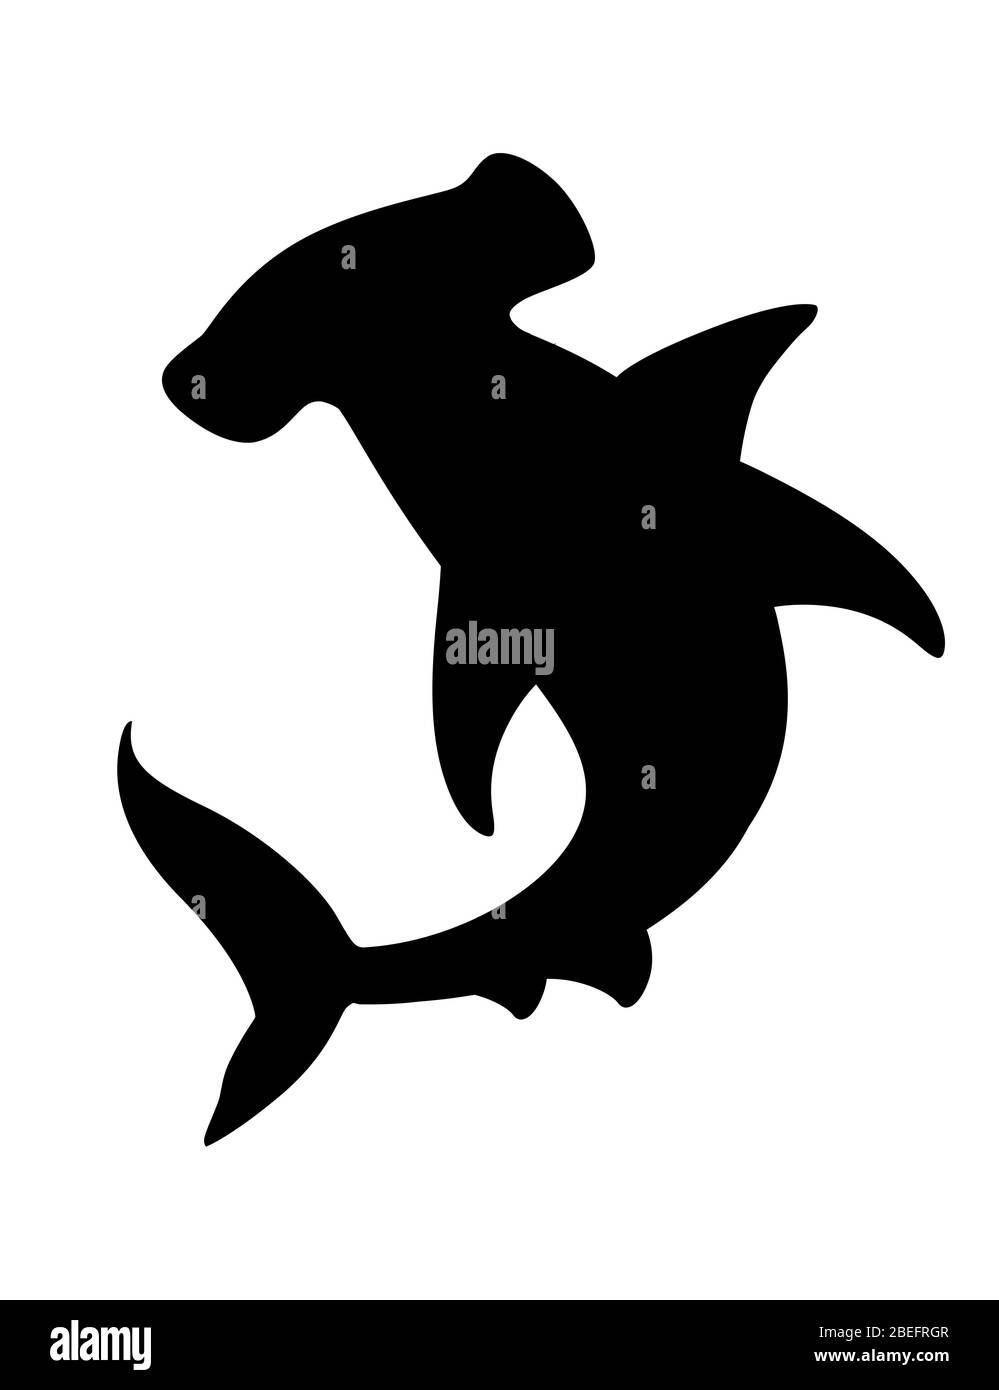 Black Silhouette Hammerhead Shark Underwater Giant Animal Simple Cartoon Character Design Flat Vector Illustration Isolated On White Background Stock Vector Image Art Alamy No need to register, buy now! https www alamy com black silhouette hammerhead shark underwater giant animal simple cartoon character design flat vector illustration isolated on white background image353160327 html